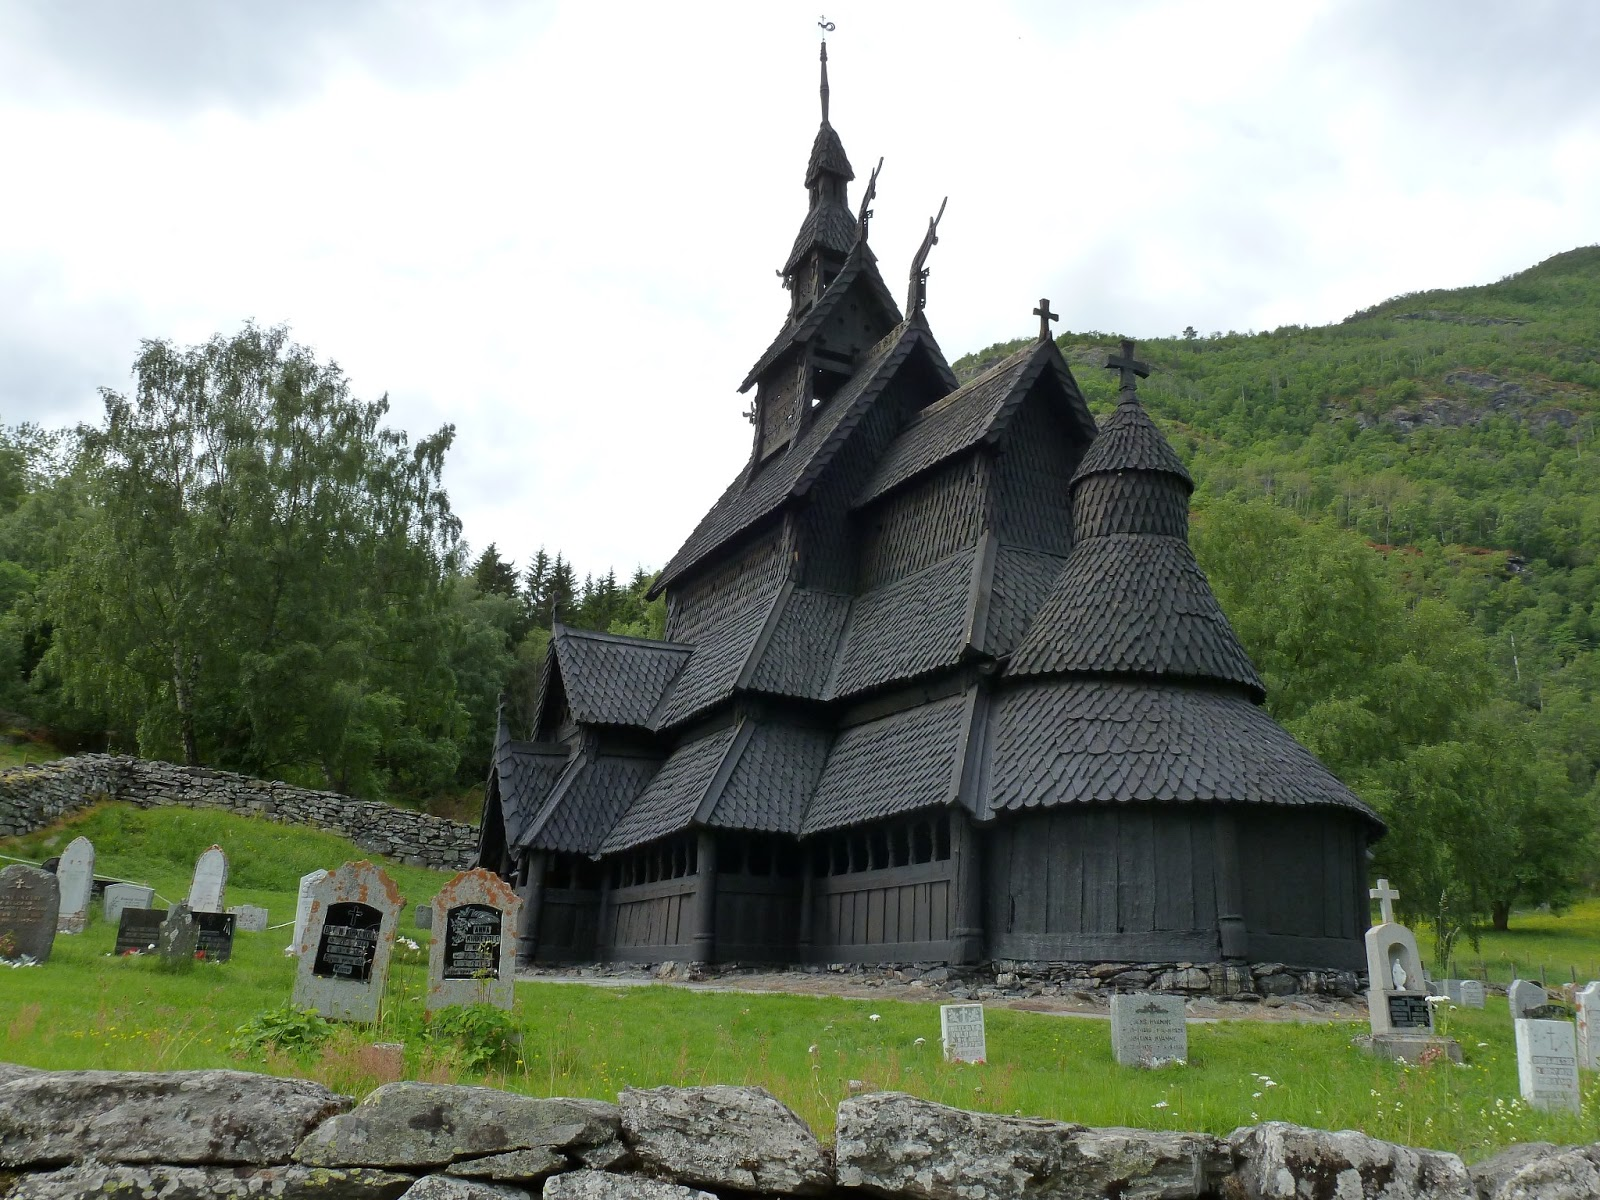 borgund-stave-church-norway-17